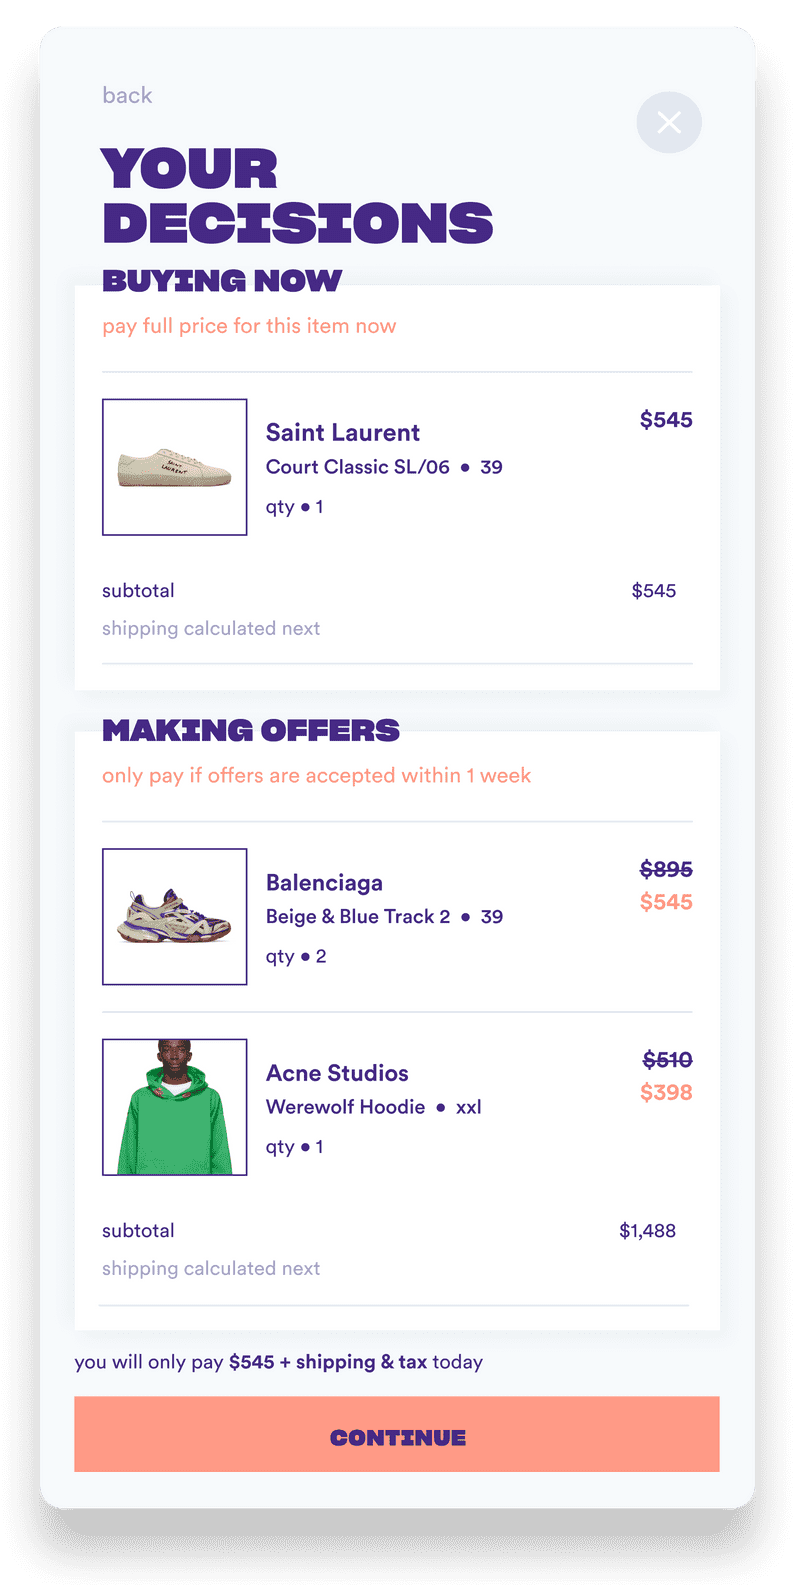 Batch offers a hybrid checkout mixing 'Buy Now' with prepaid offers.